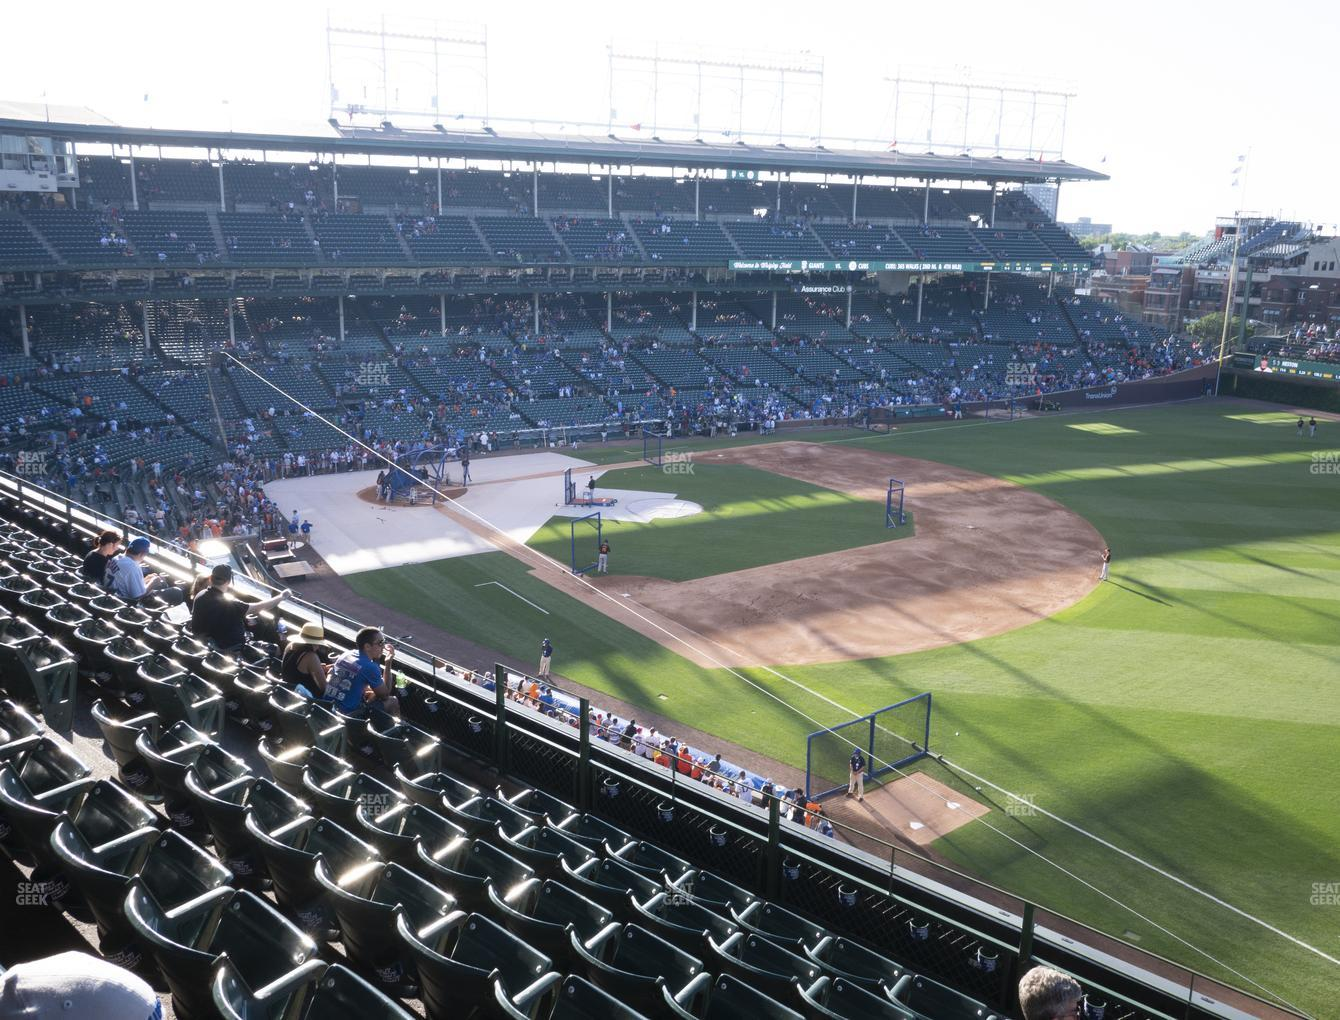 Chicago Cubs at Wrigley Field 330 Right View